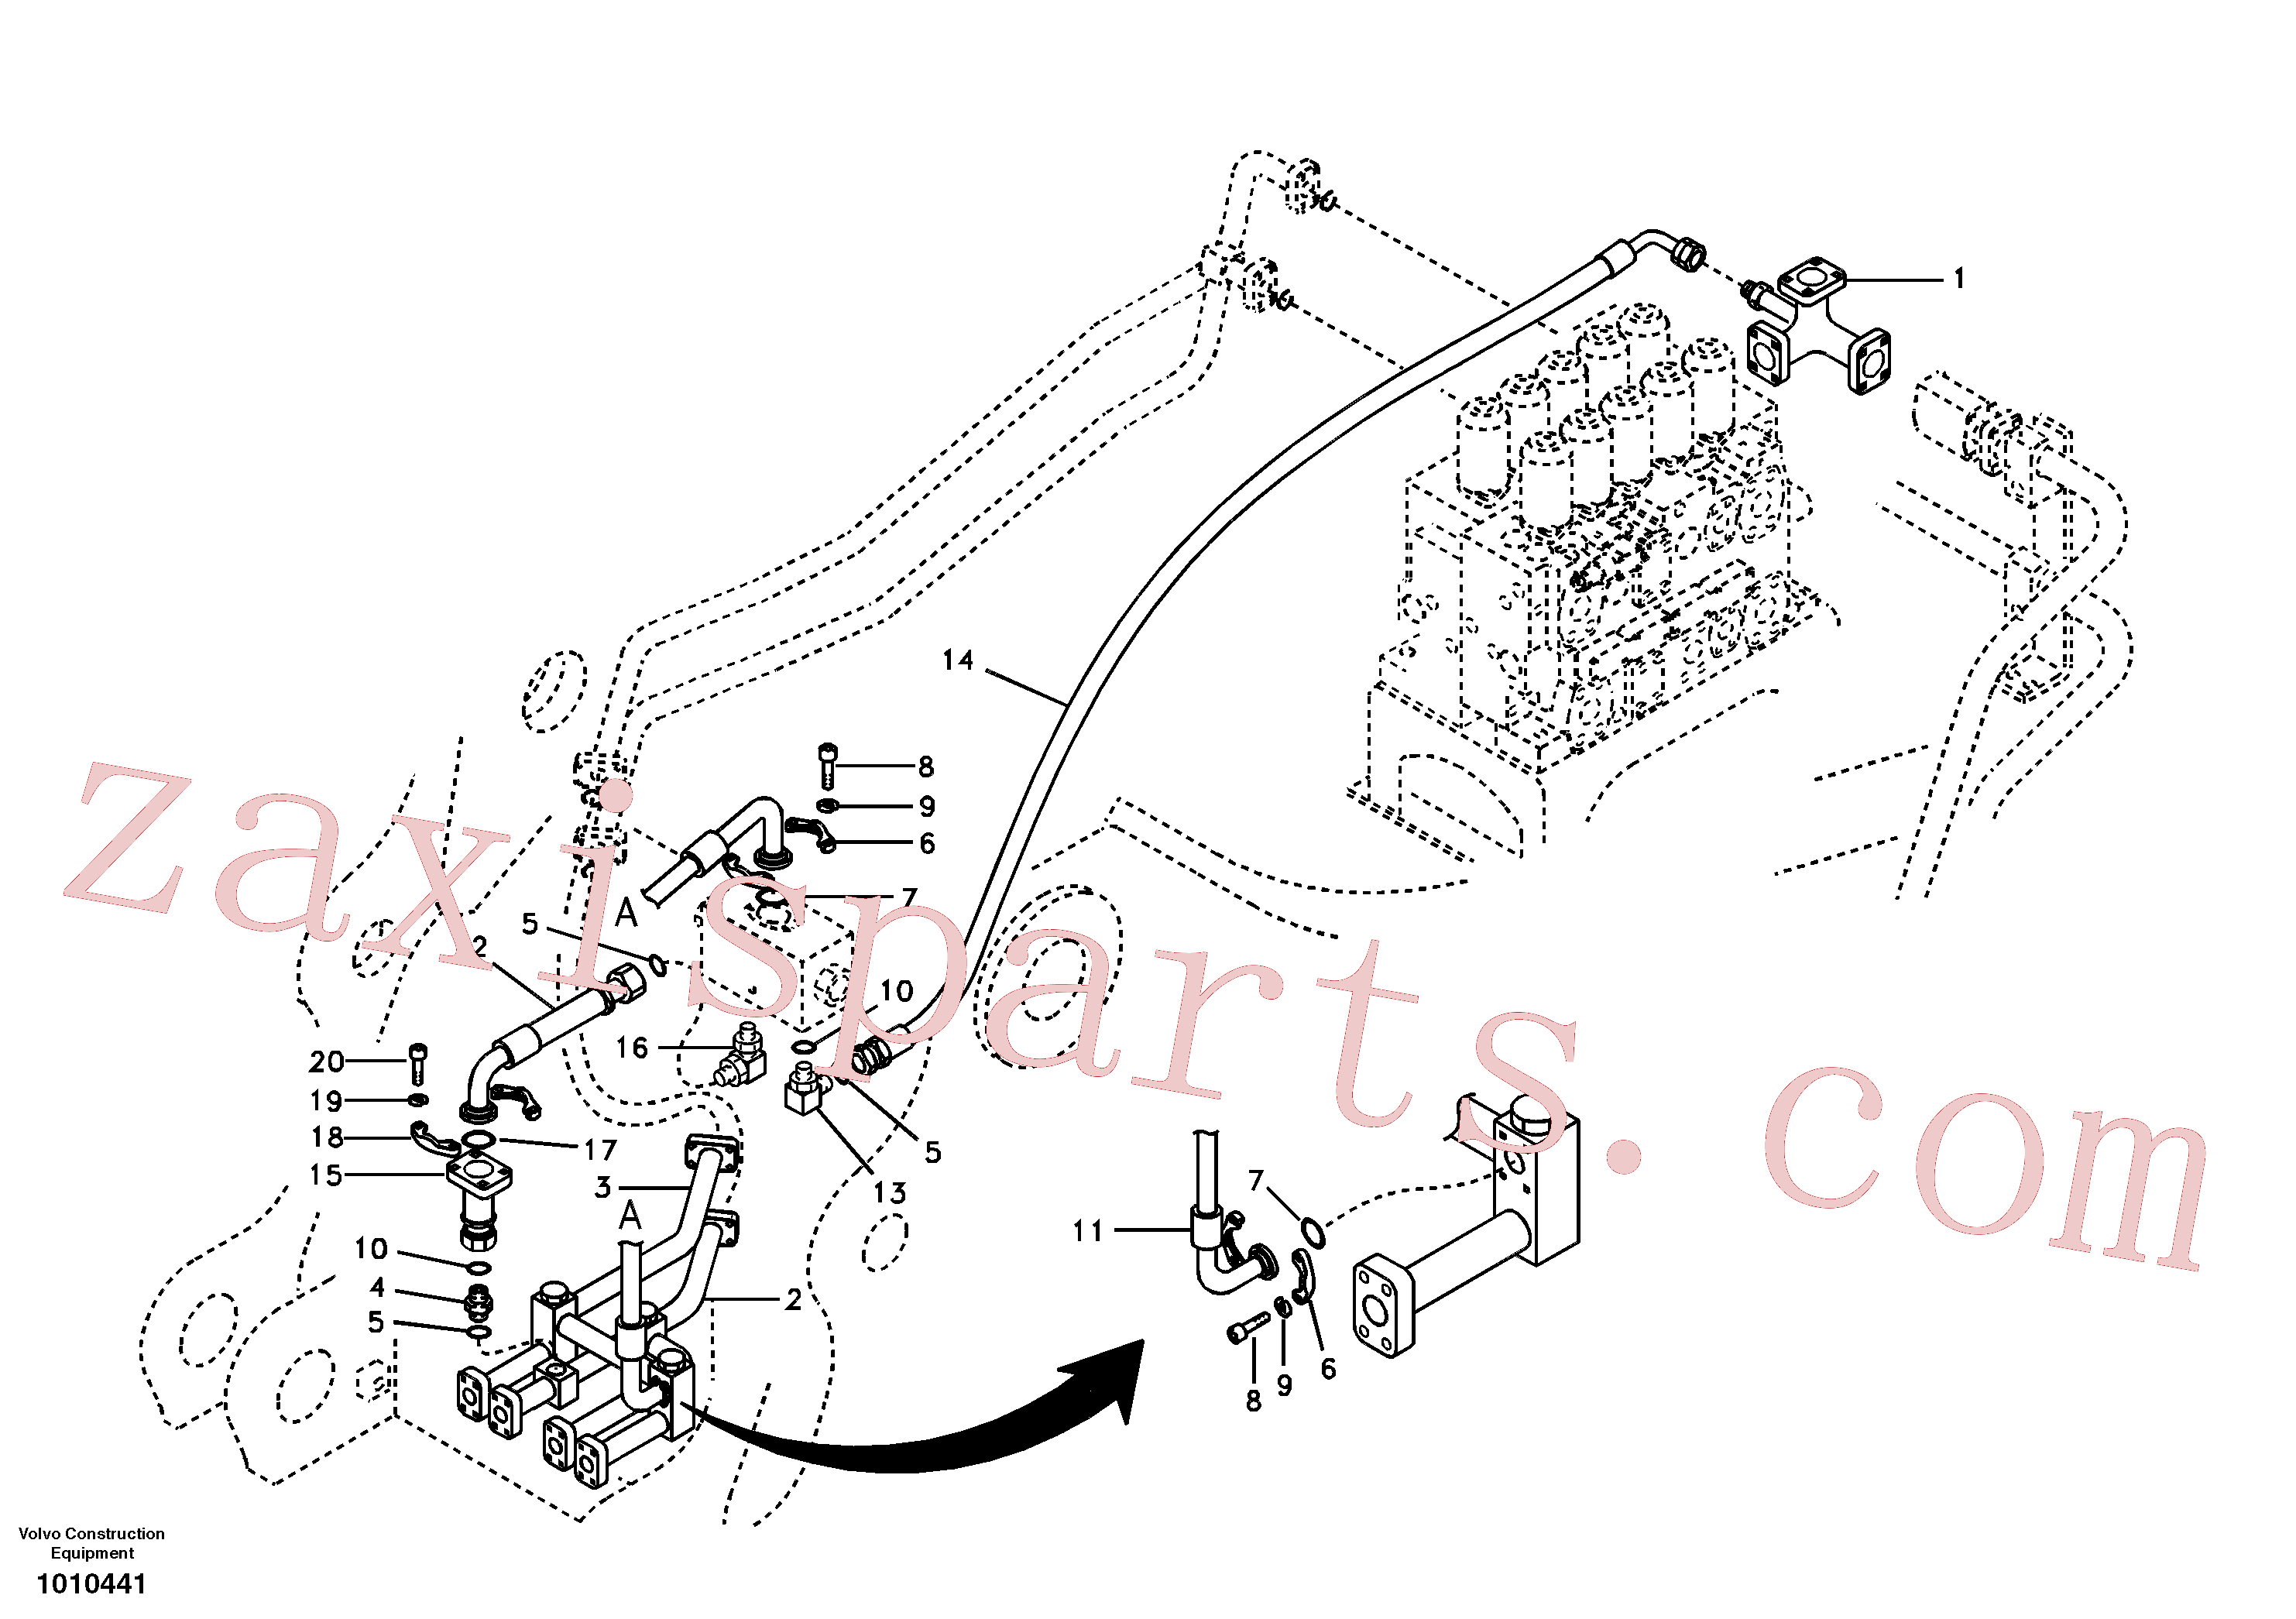 VOE14518866 for Volvo Hydraulic system, control valve to boom and swing(1010441 assembly)